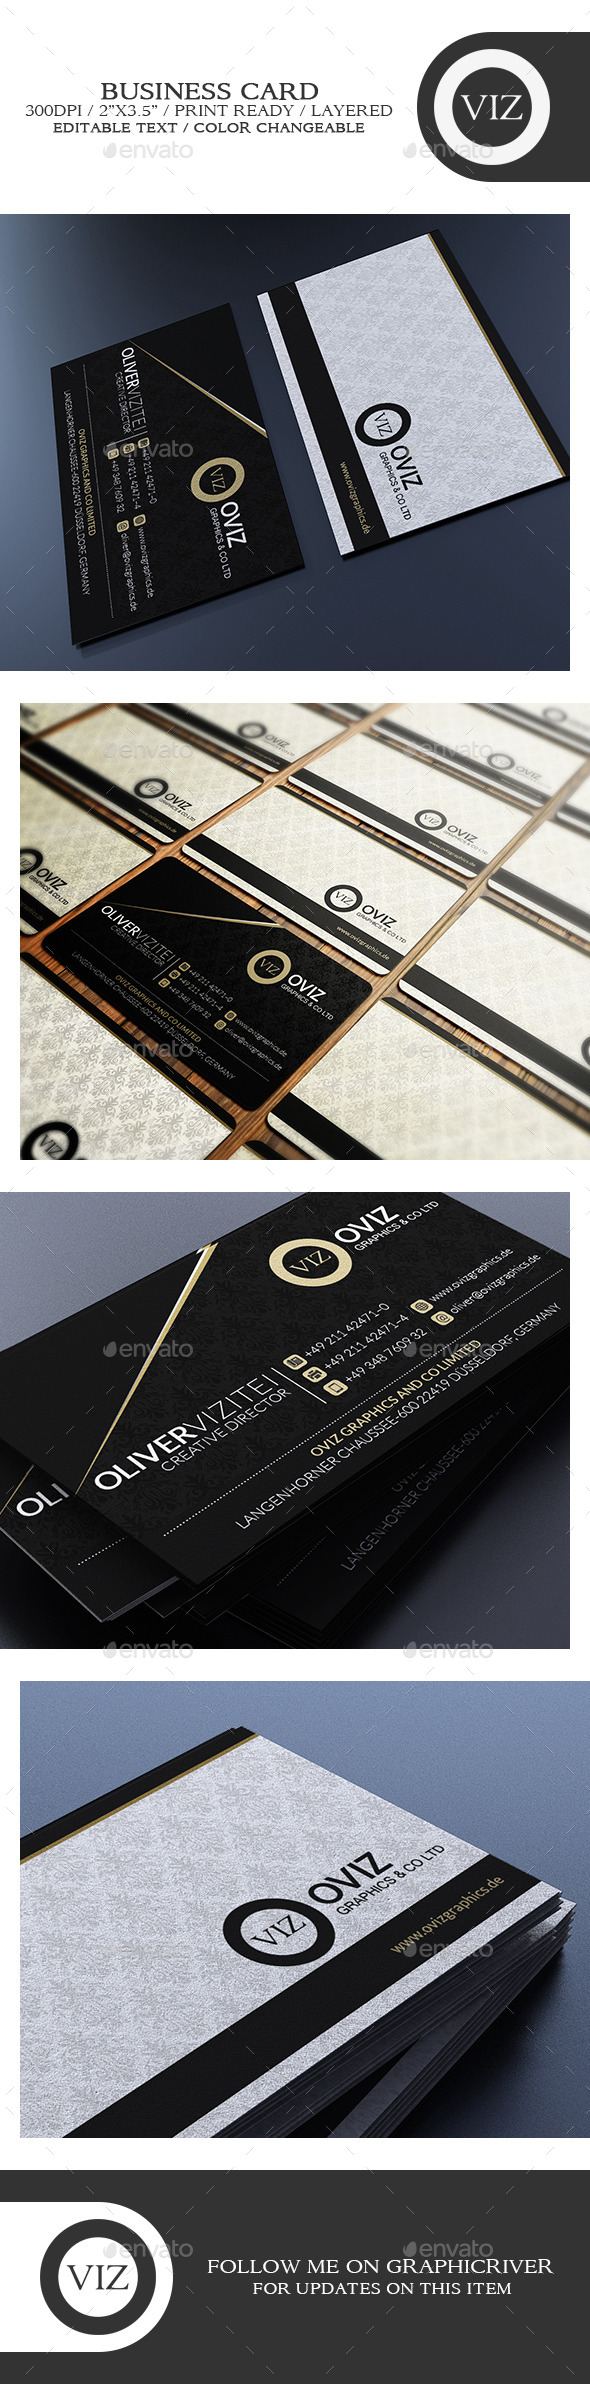 GraphicRiver Sleek Business Card 8791405